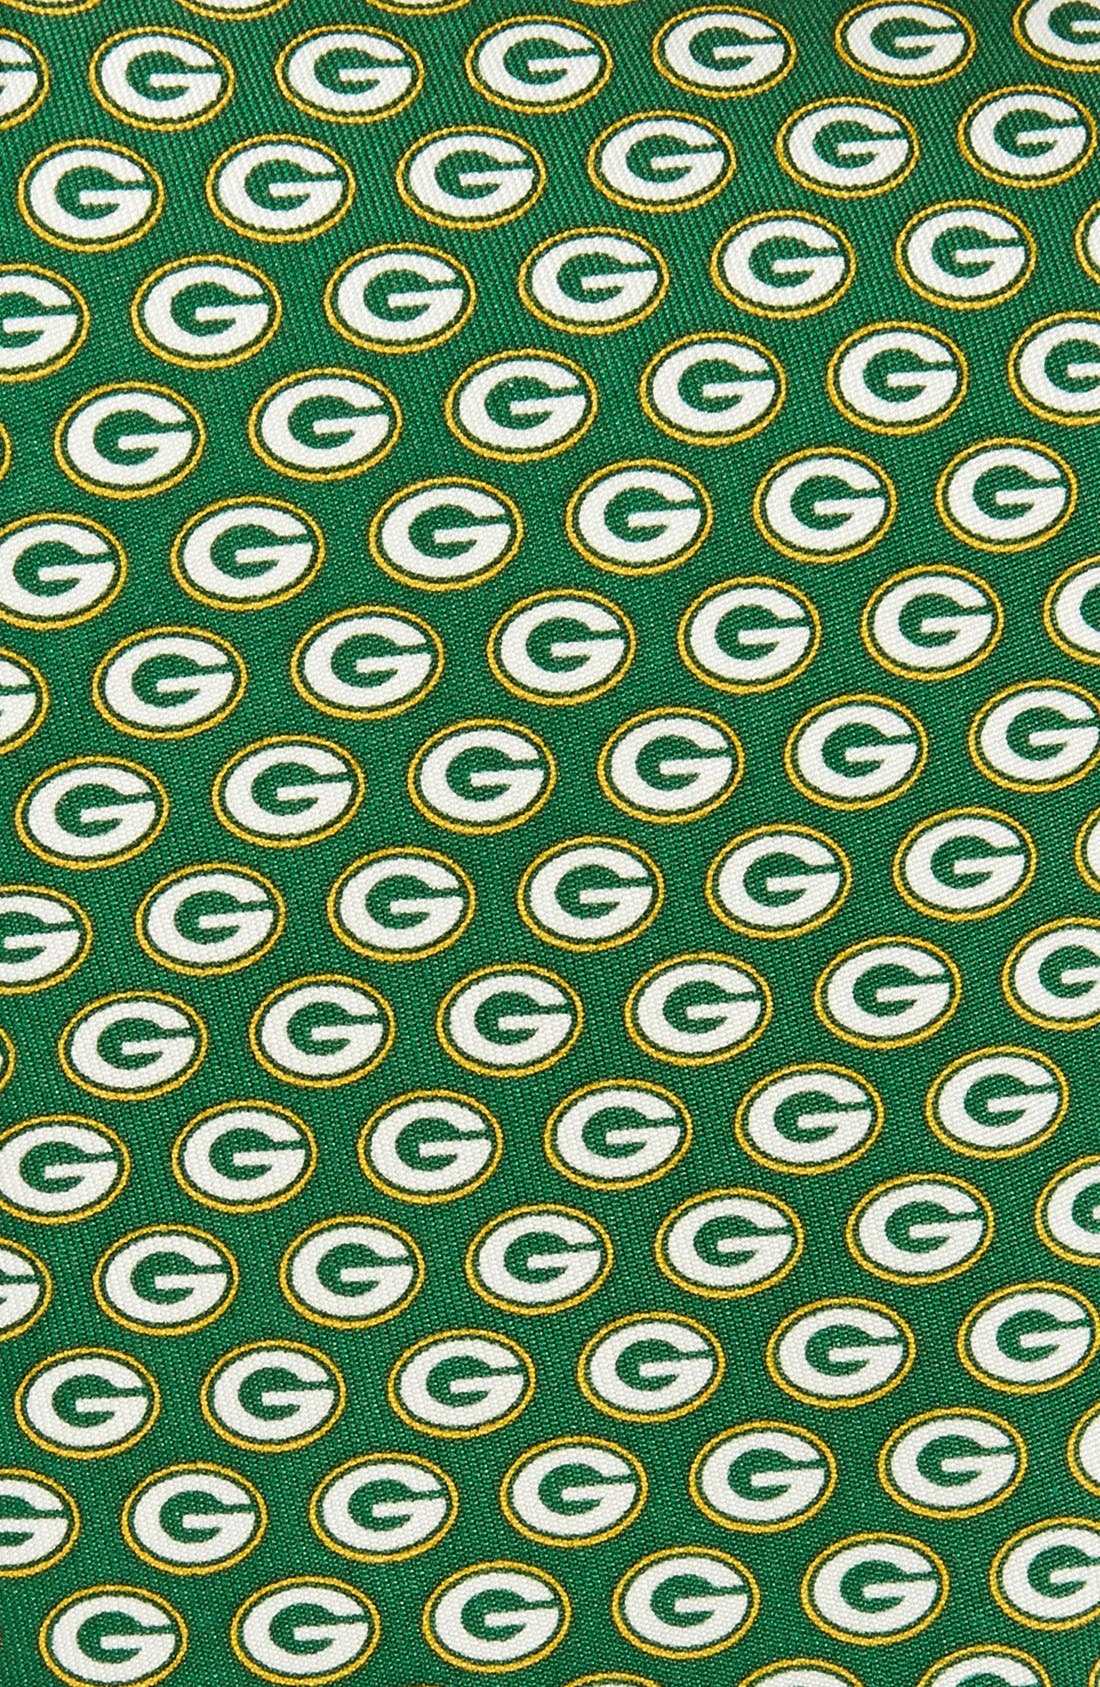 Green Bay Packers - NFL Woven Silk Tie,                             Alternate thumbnail 2, color,                             Green